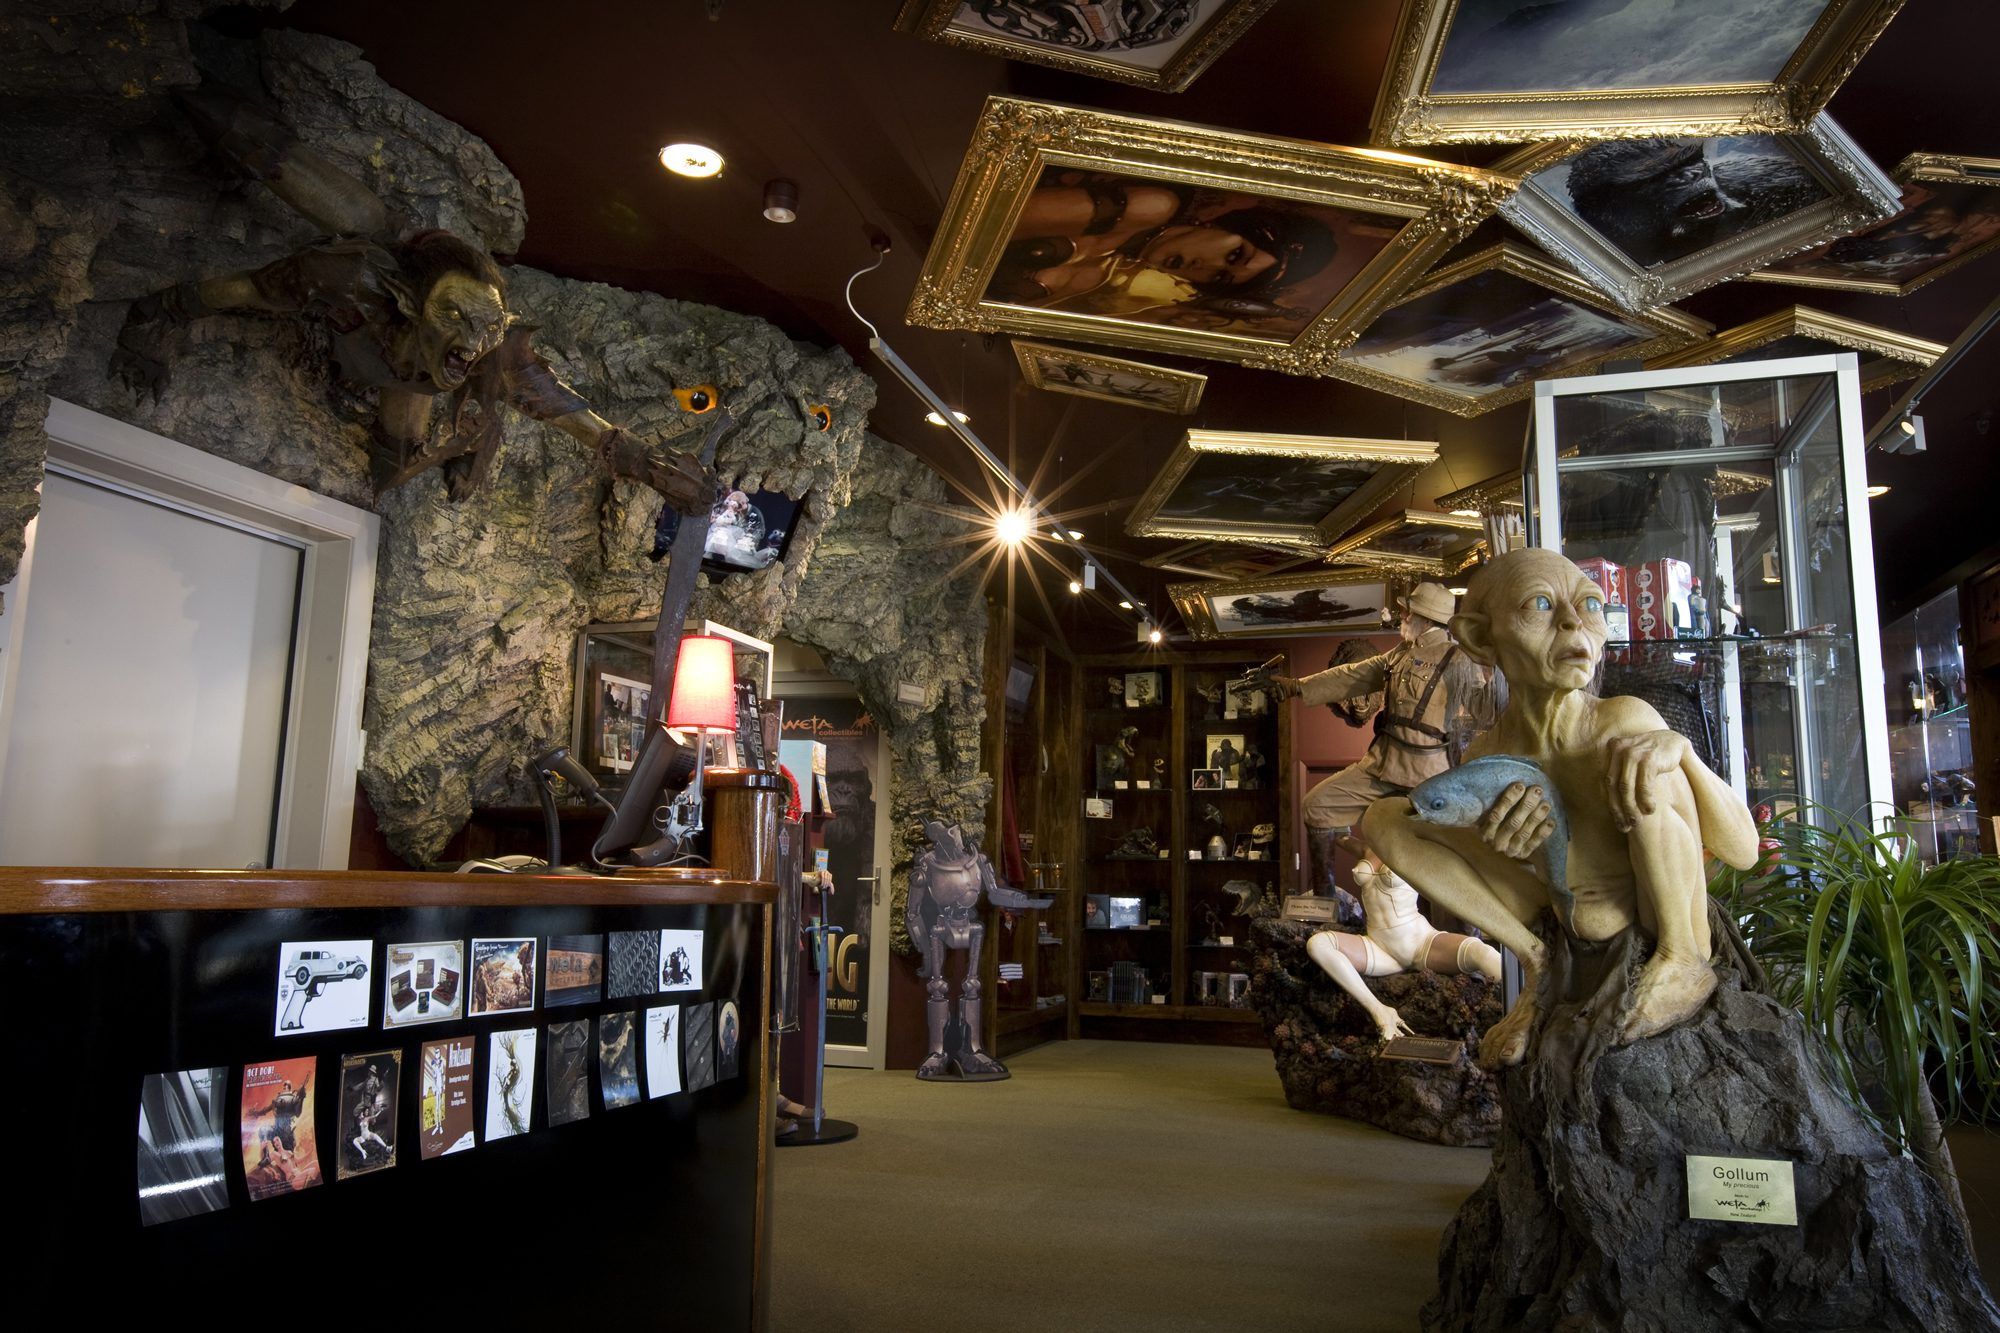 Inside the whacky Weta Cave Museum with picture frames on the ceiling.